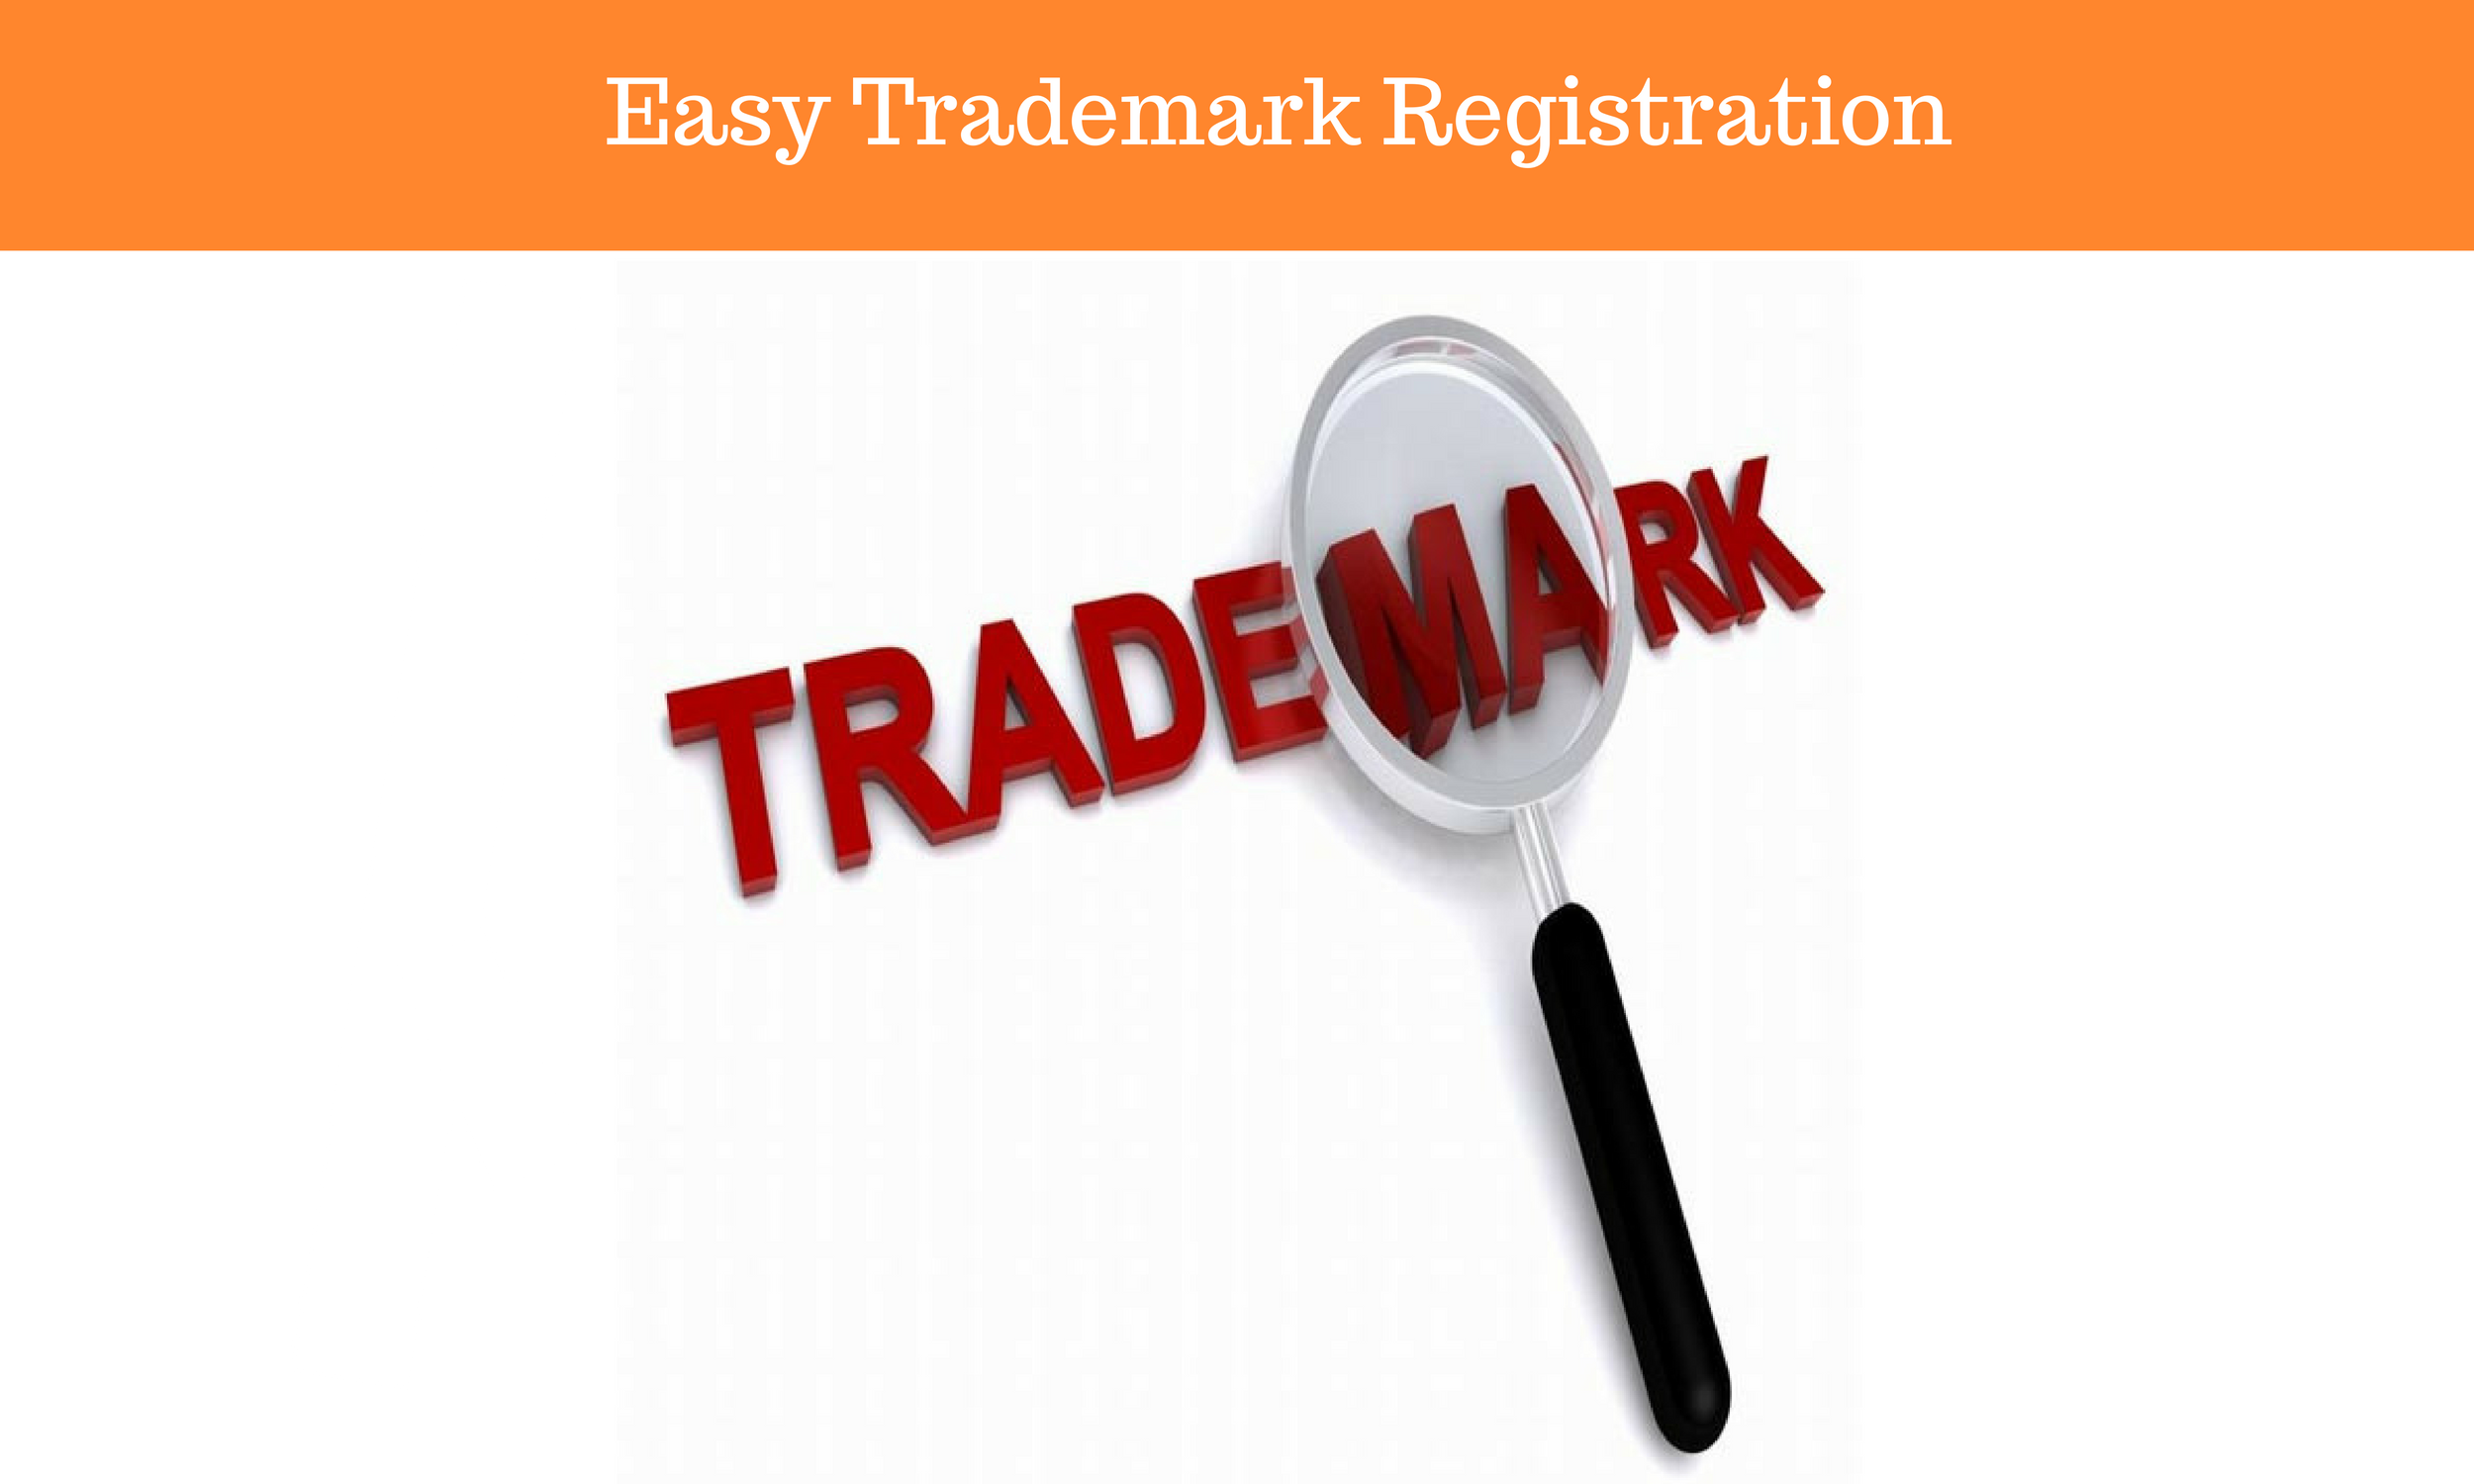 Easy TRADEMARK Registration